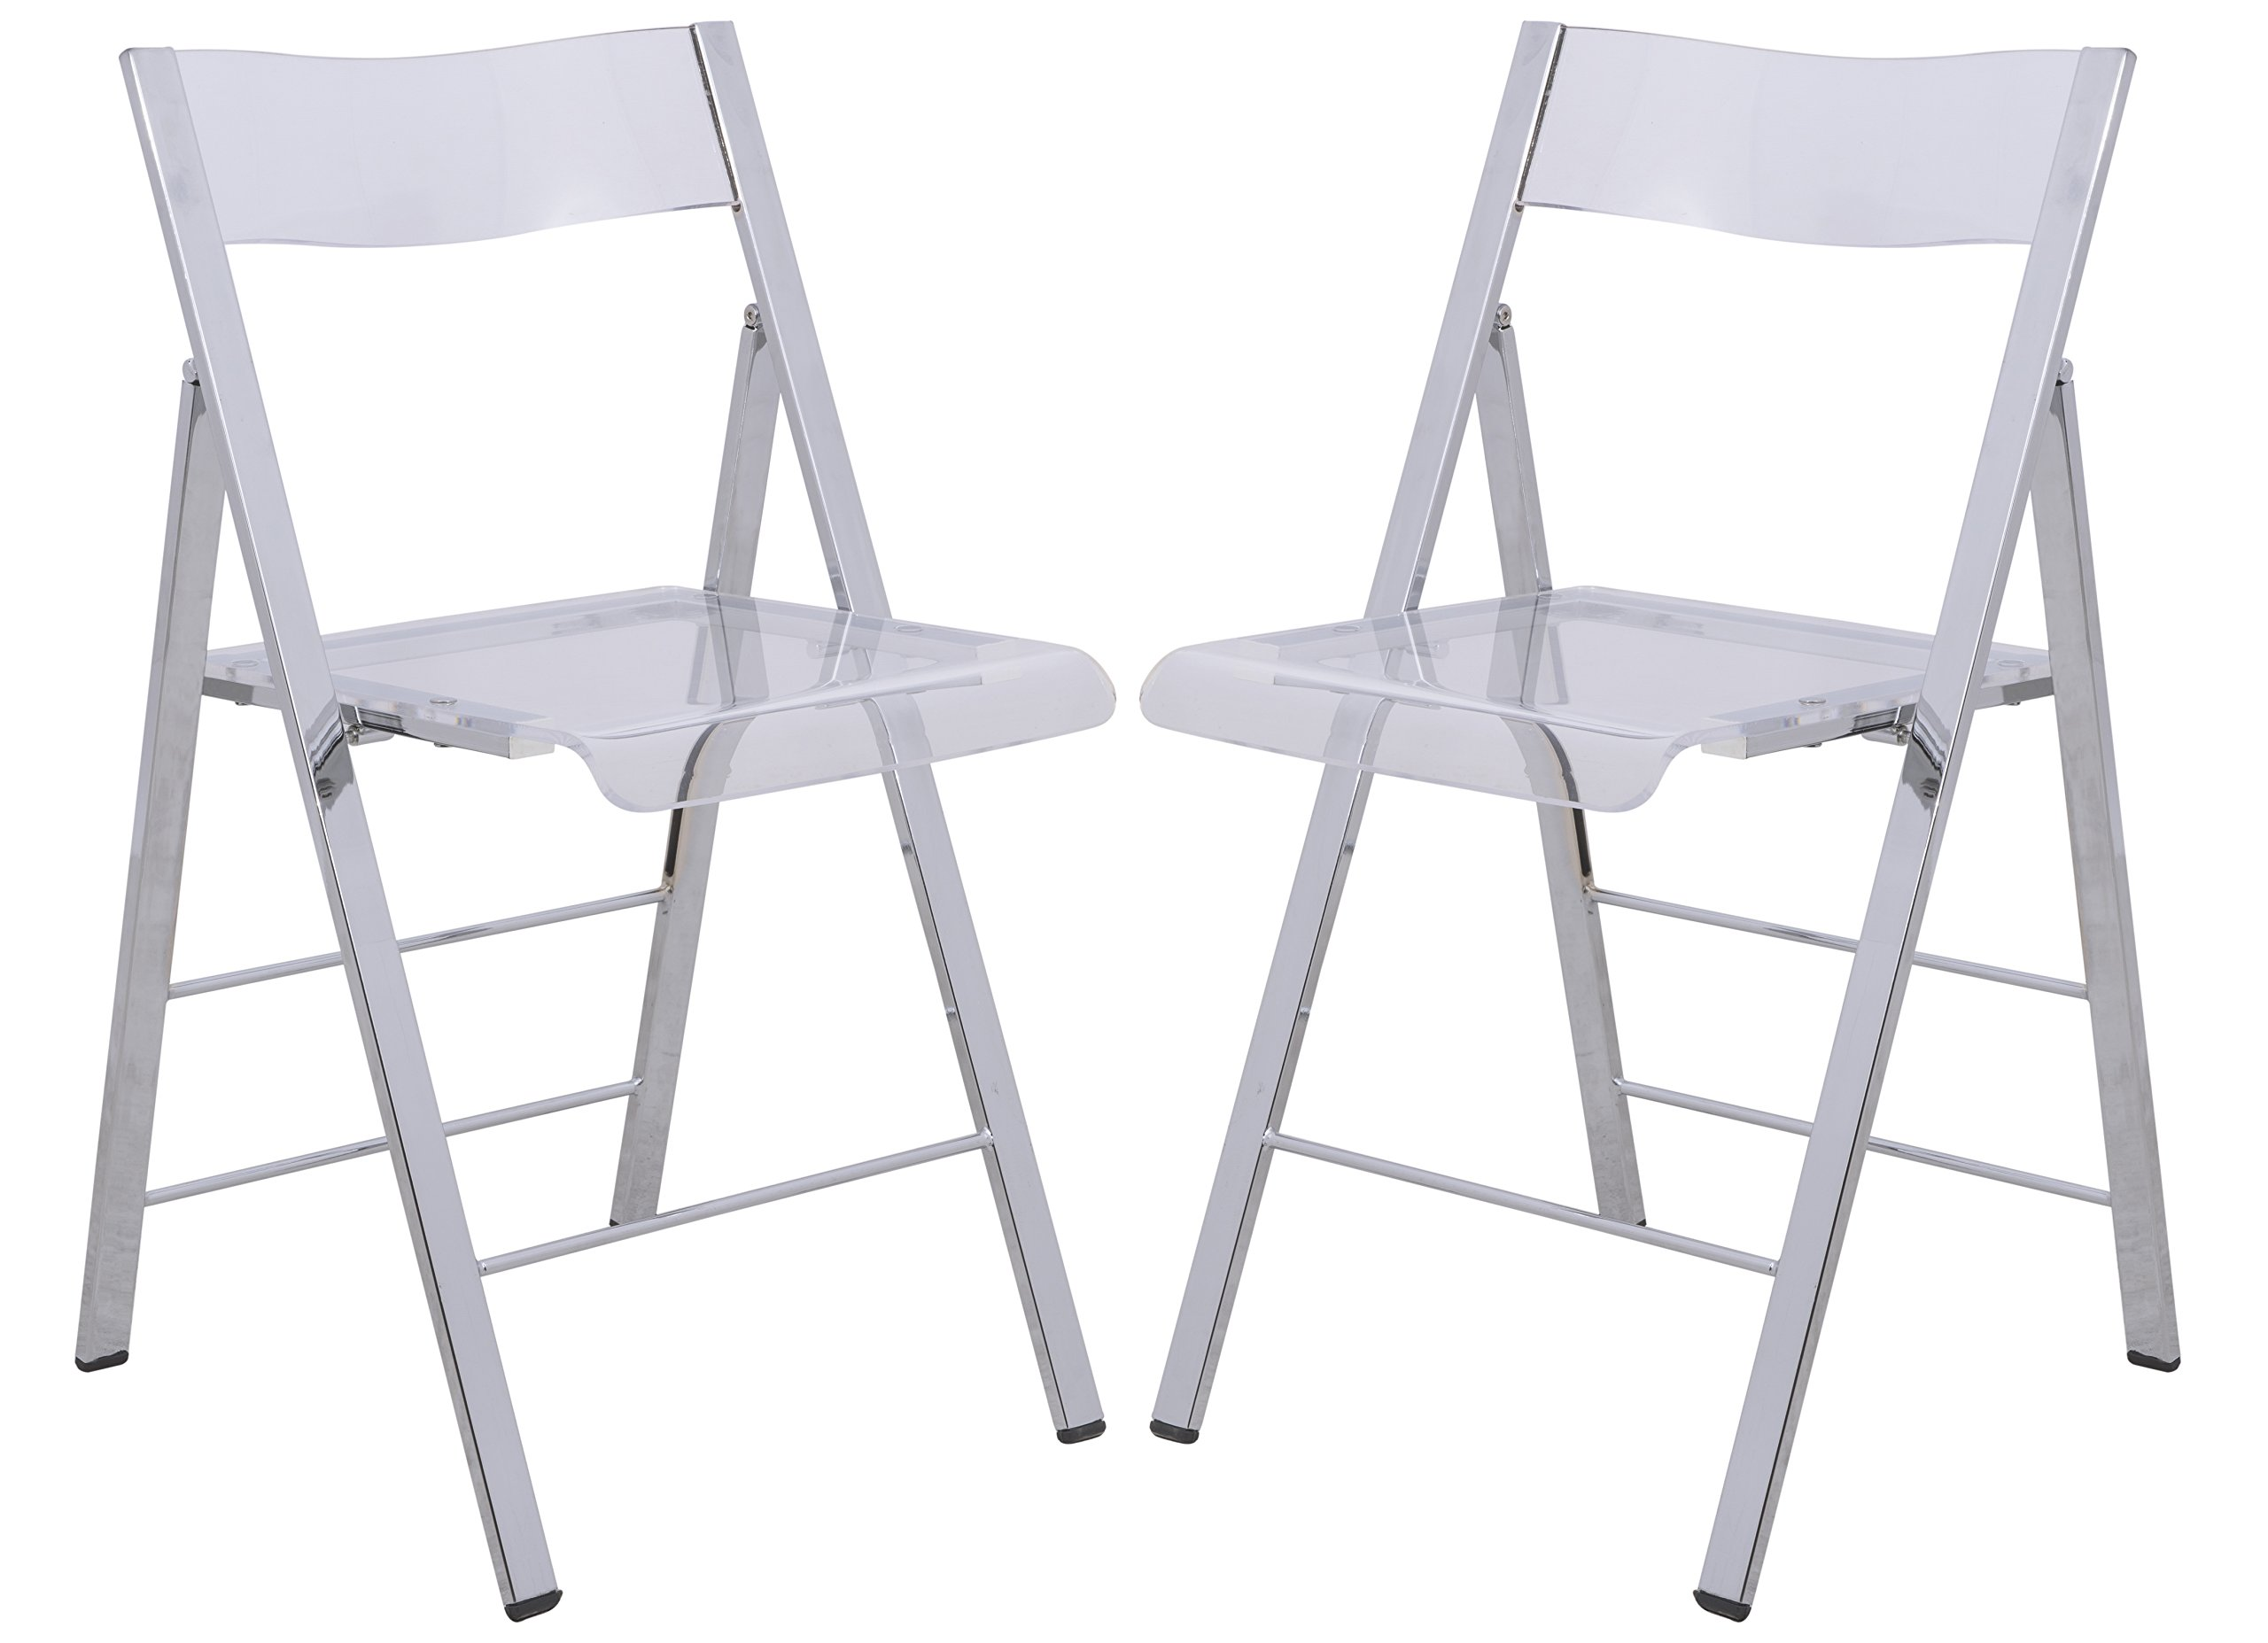 LeisureMod Milden Modern Acrylic Folding Chairs, Set of 2 (Clear) by LeisureMod